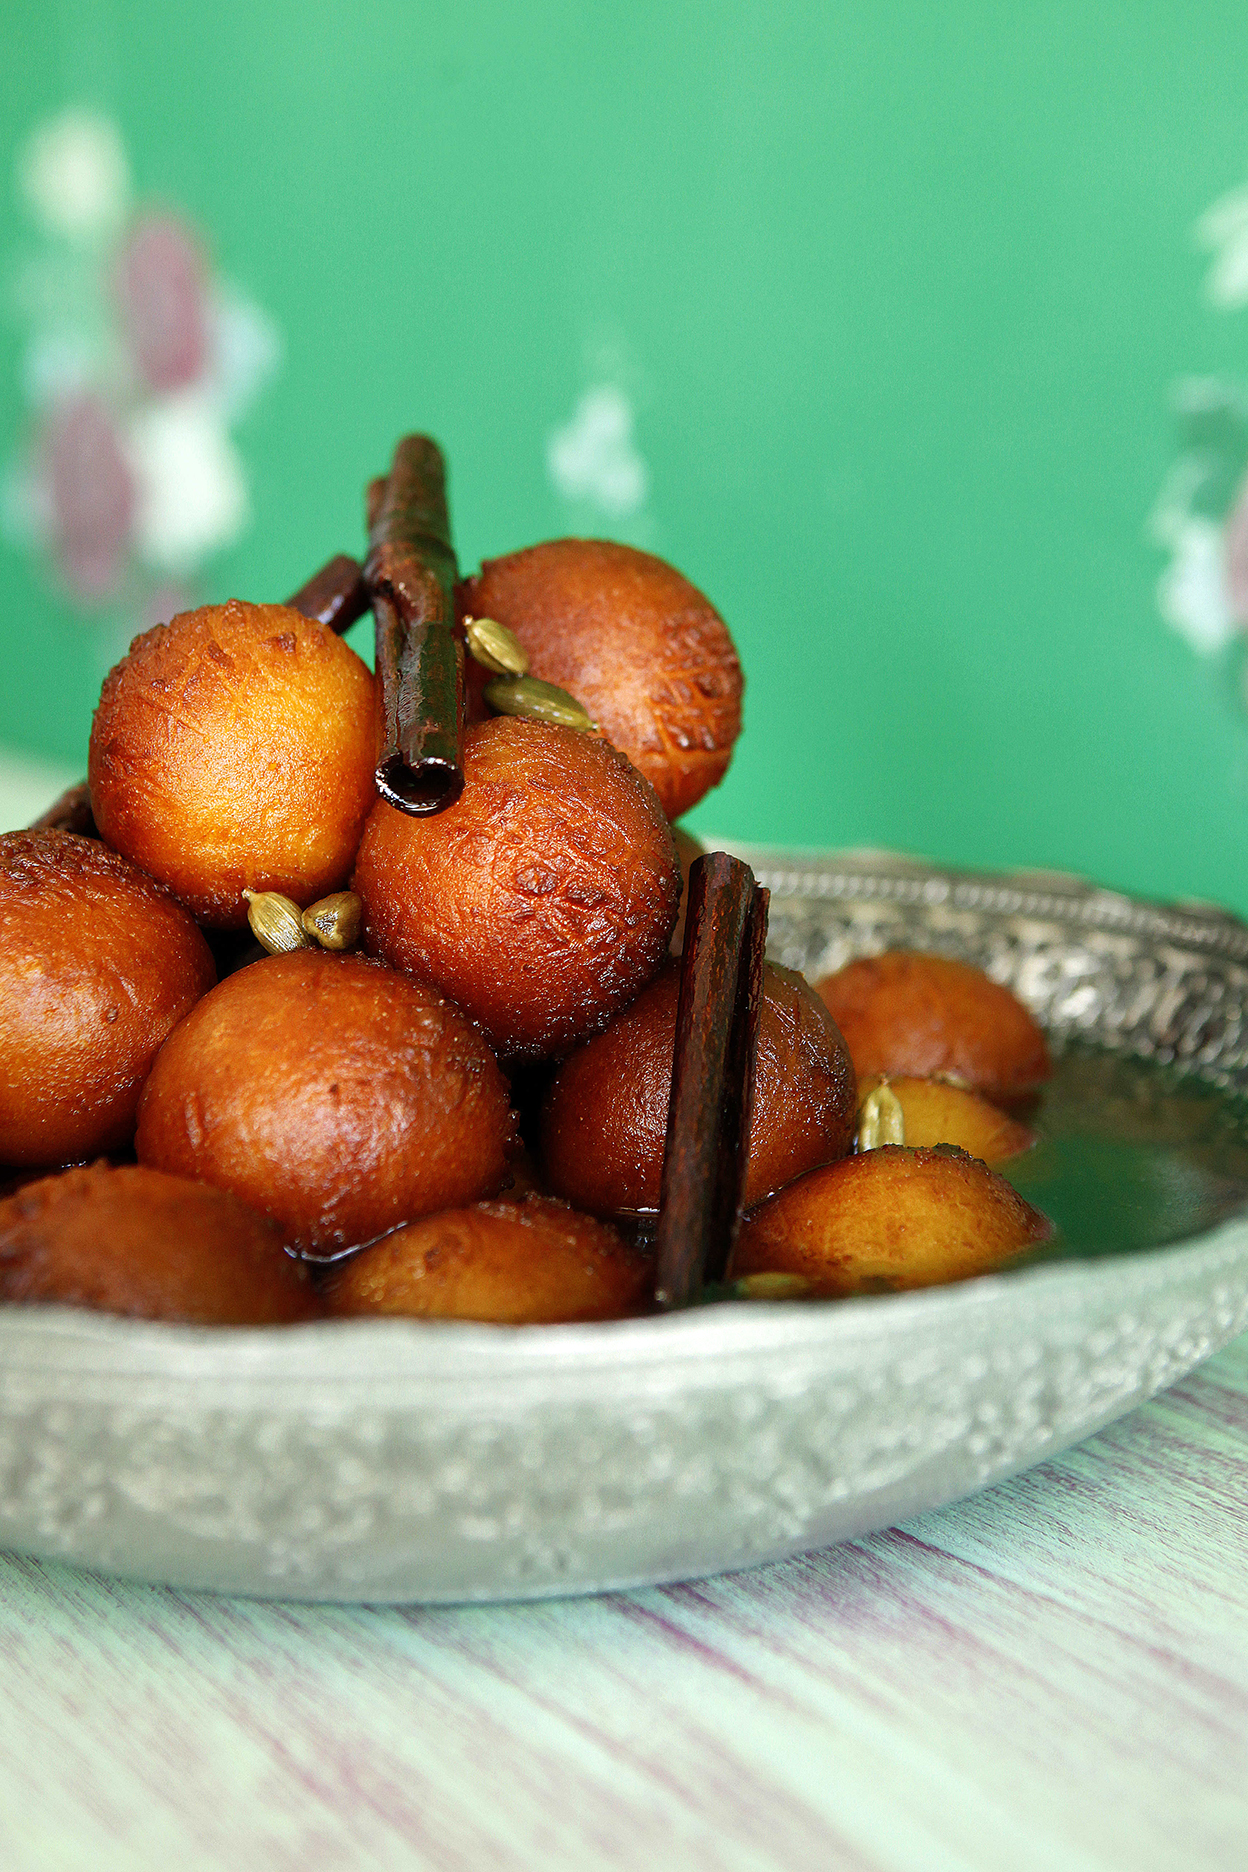 CHP_Export_126284417_'Gulab Jamun' sweet dumplings with spiced syrup is just some of the cakes at Sh.jpg